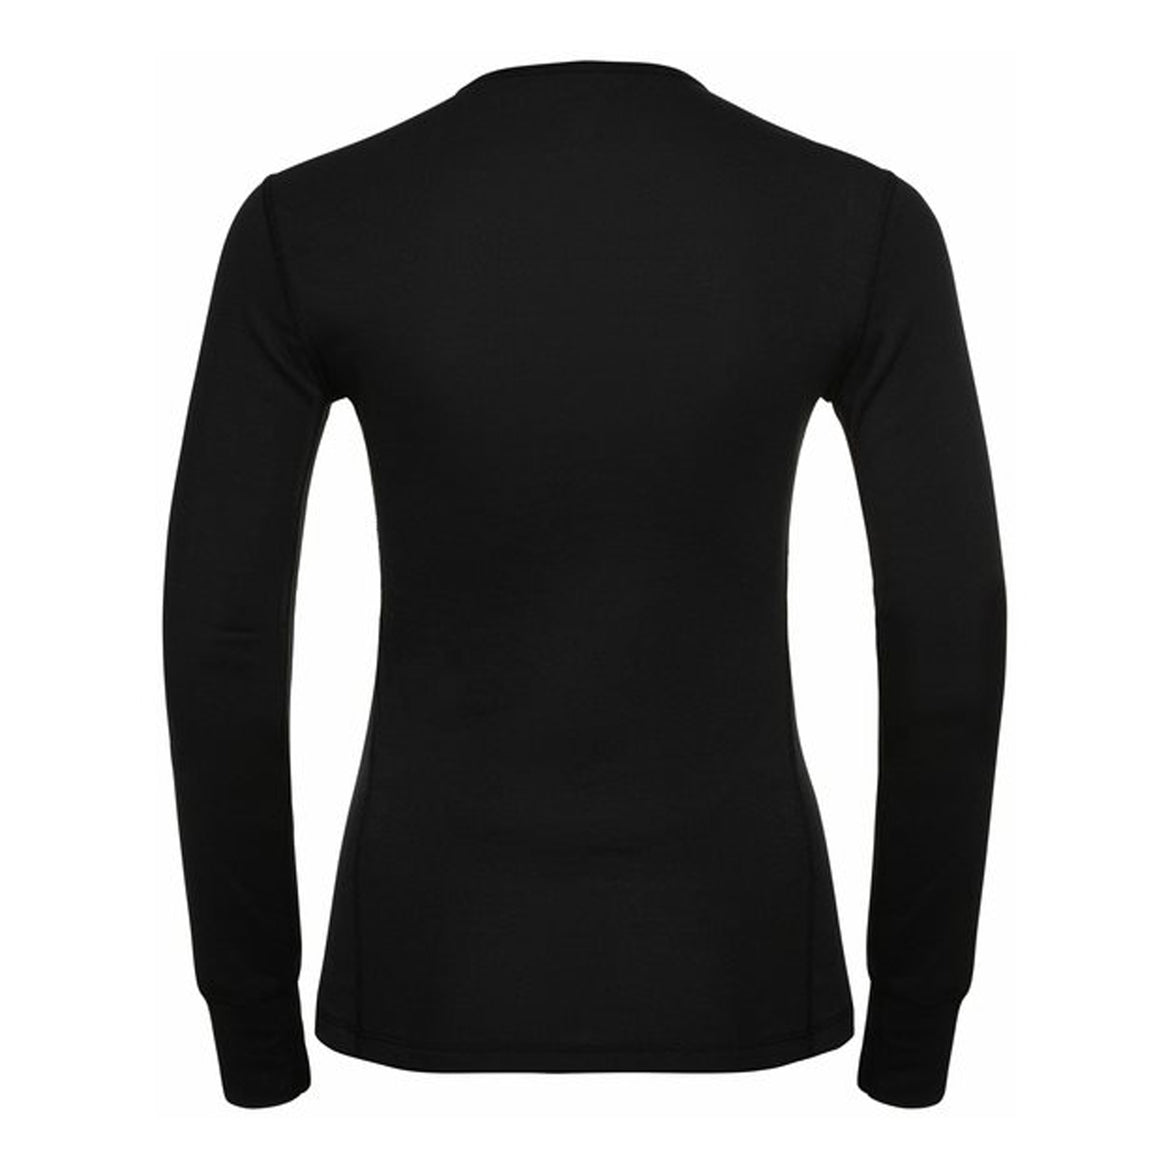 Active Warm Eco Crew Neck for Women in Black